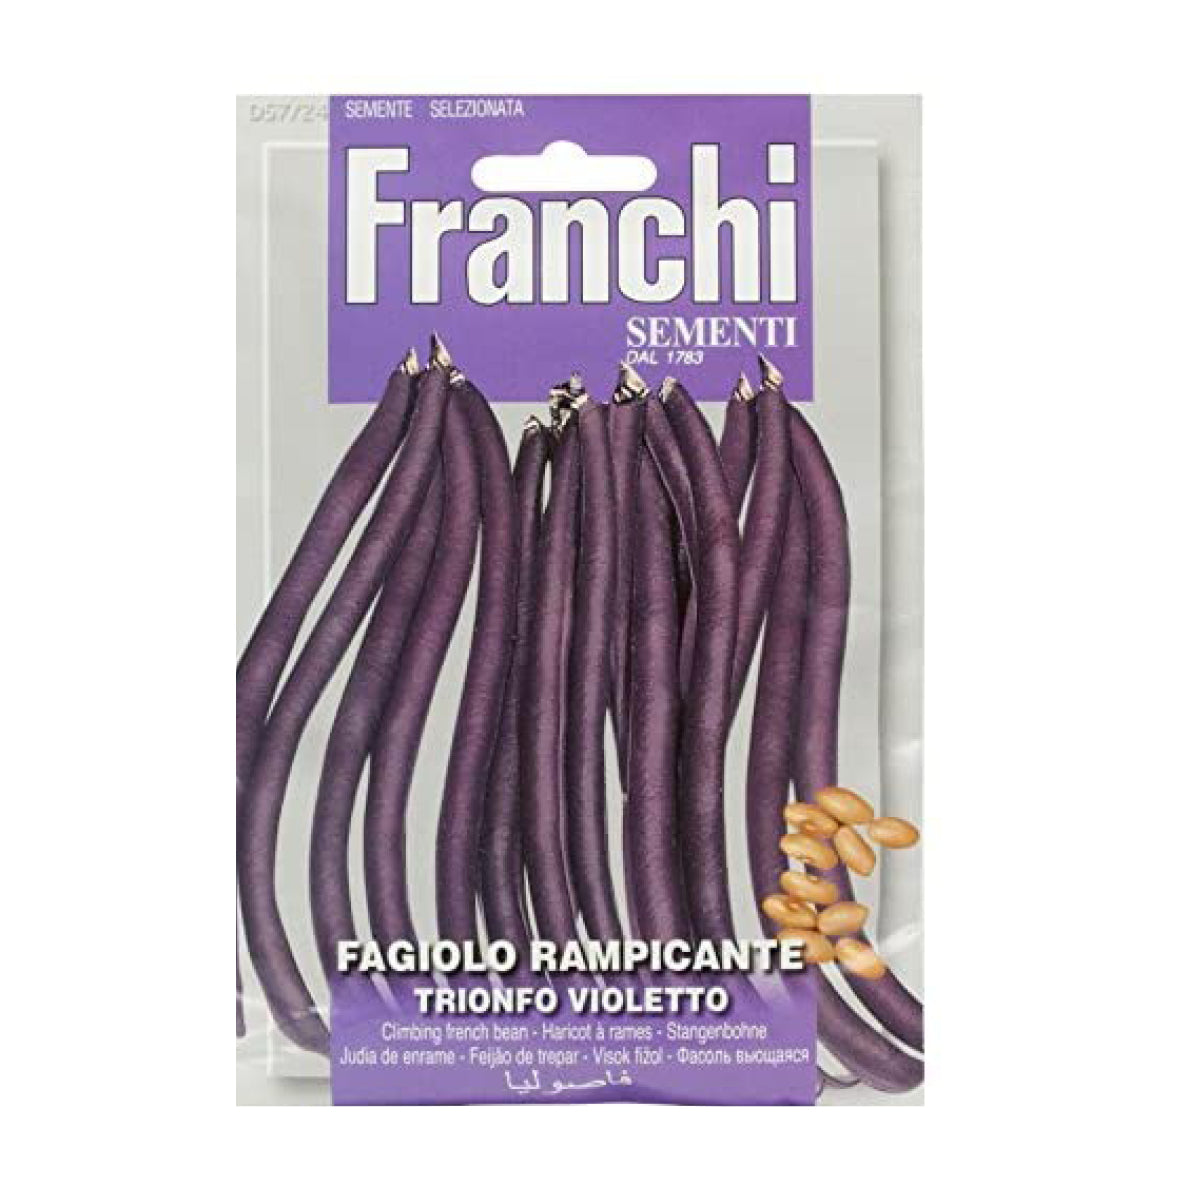 Seeds, French Bean - Fagiolo rampicante trionfo violetto